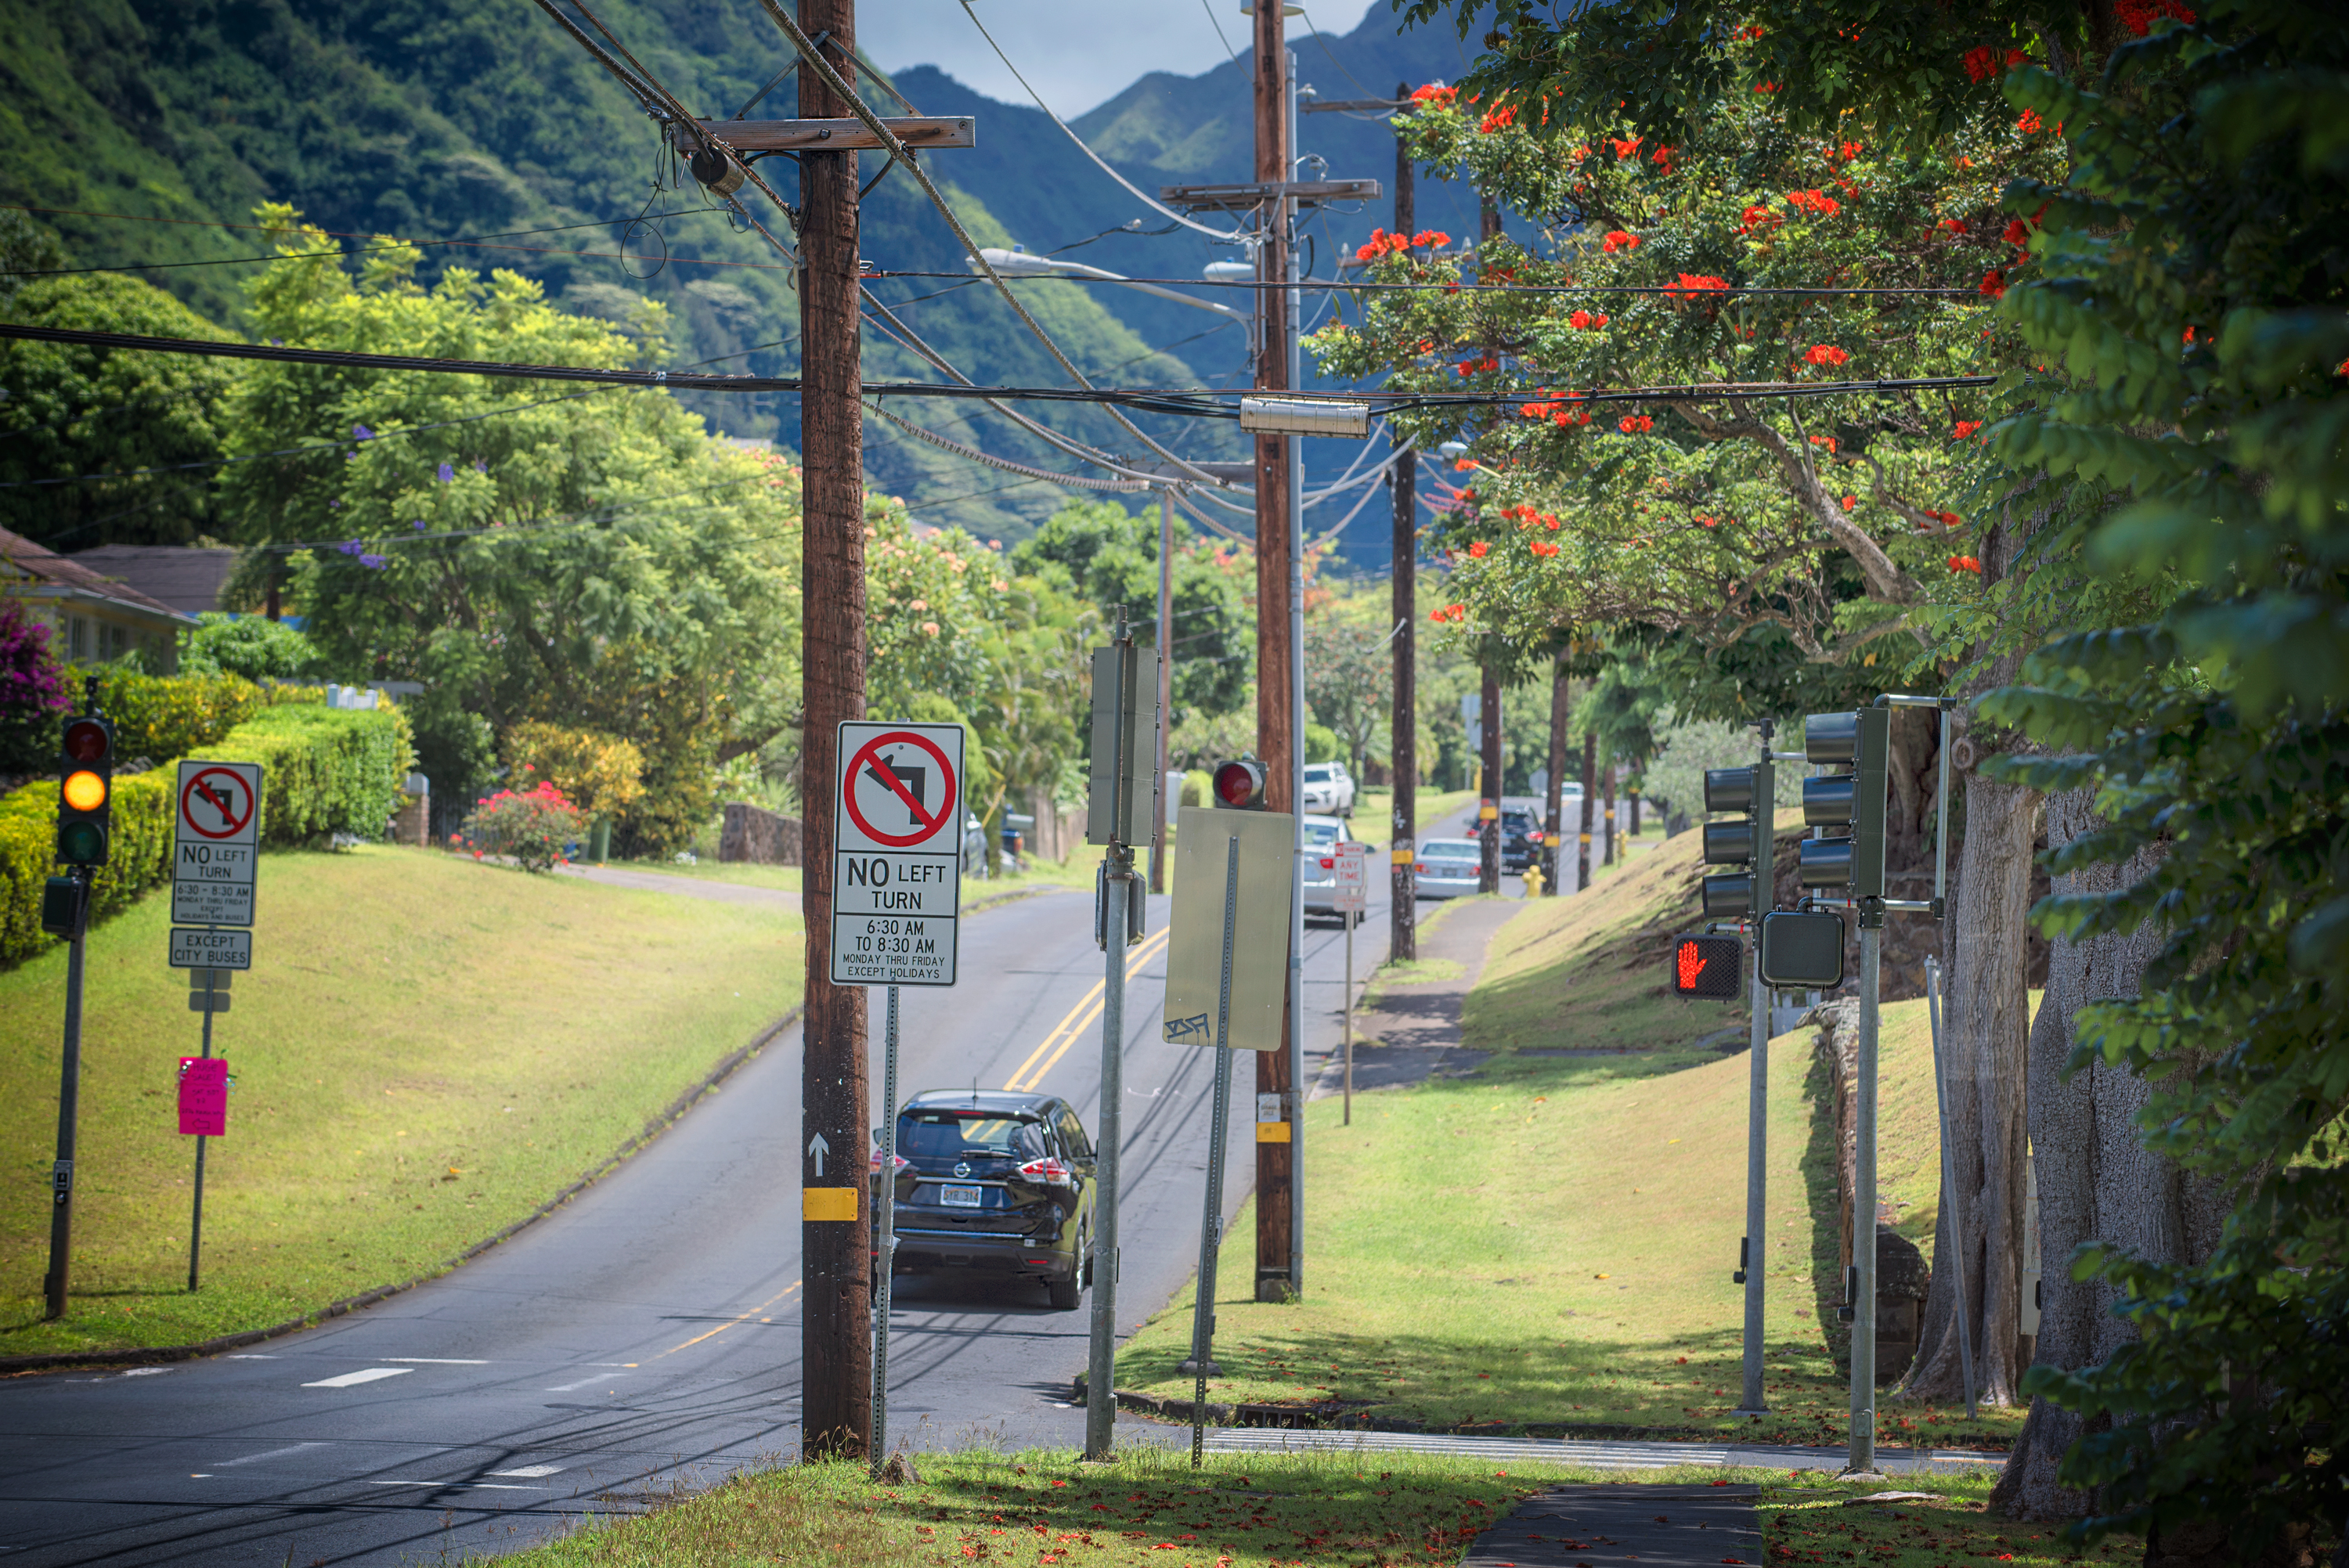 University Ave. Manoa